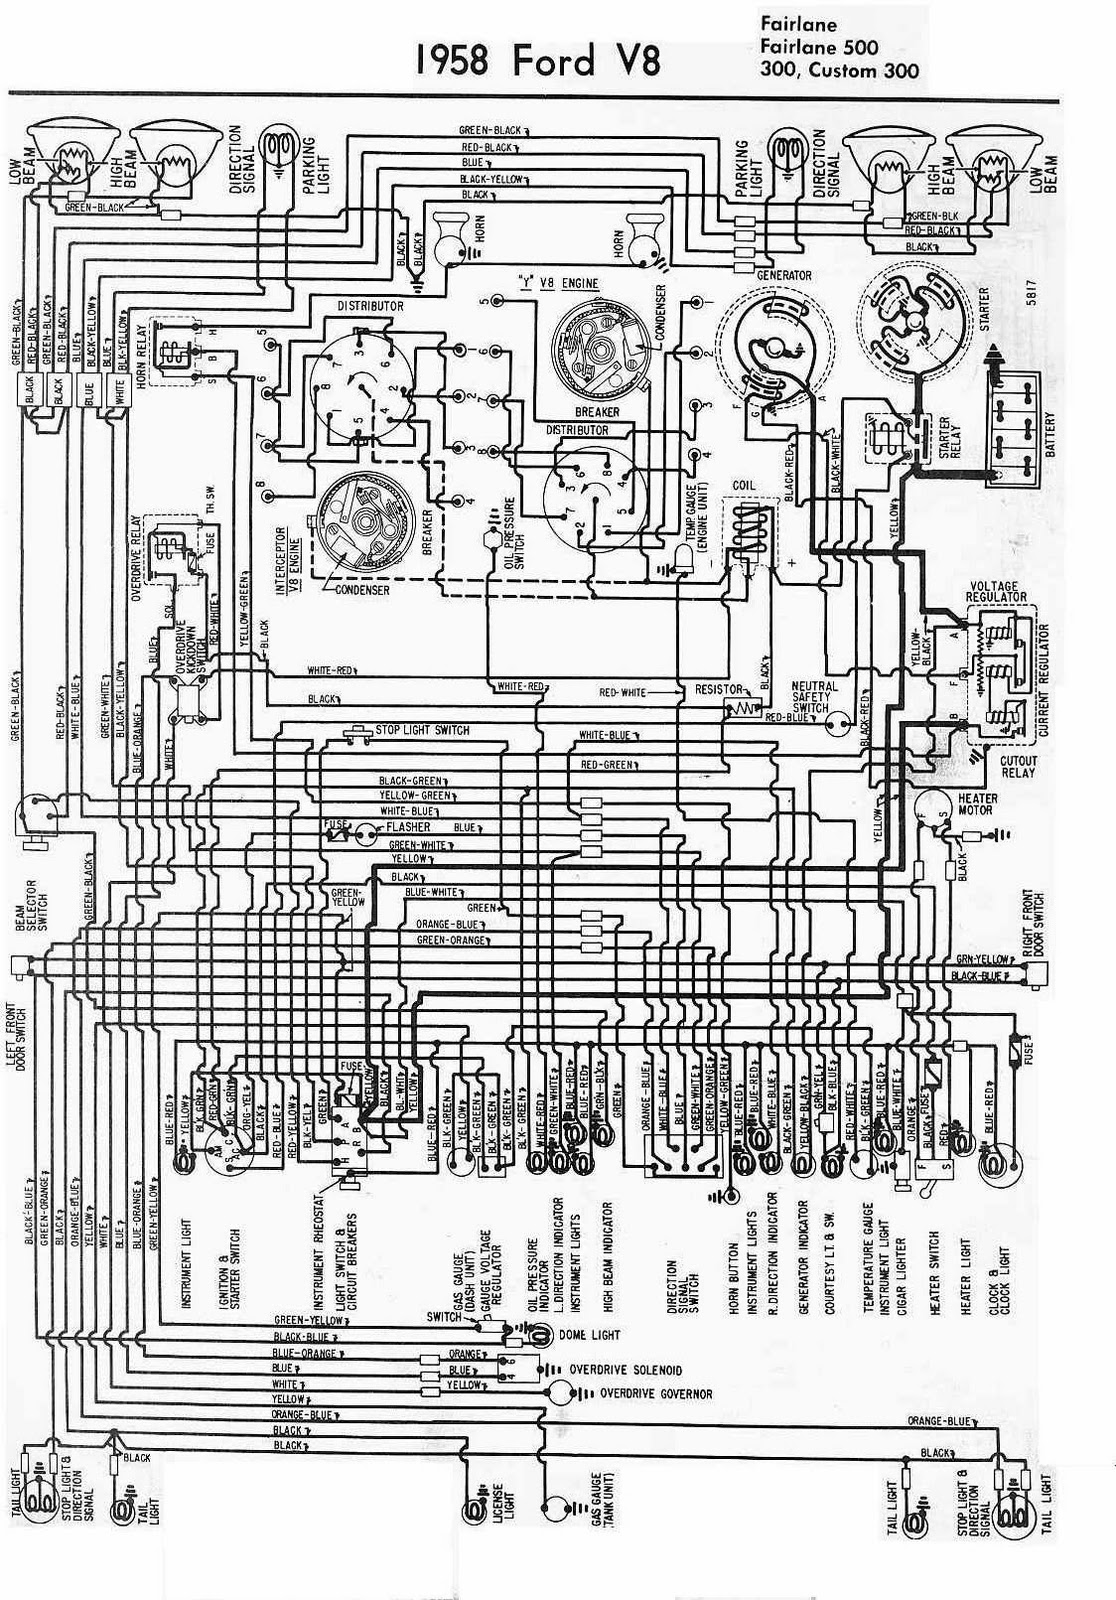 1942 Ford Wiring Diagram Manual E Books Model Ruud Schematic Rrgg05n24jkr Solenoid Diagram1942 9